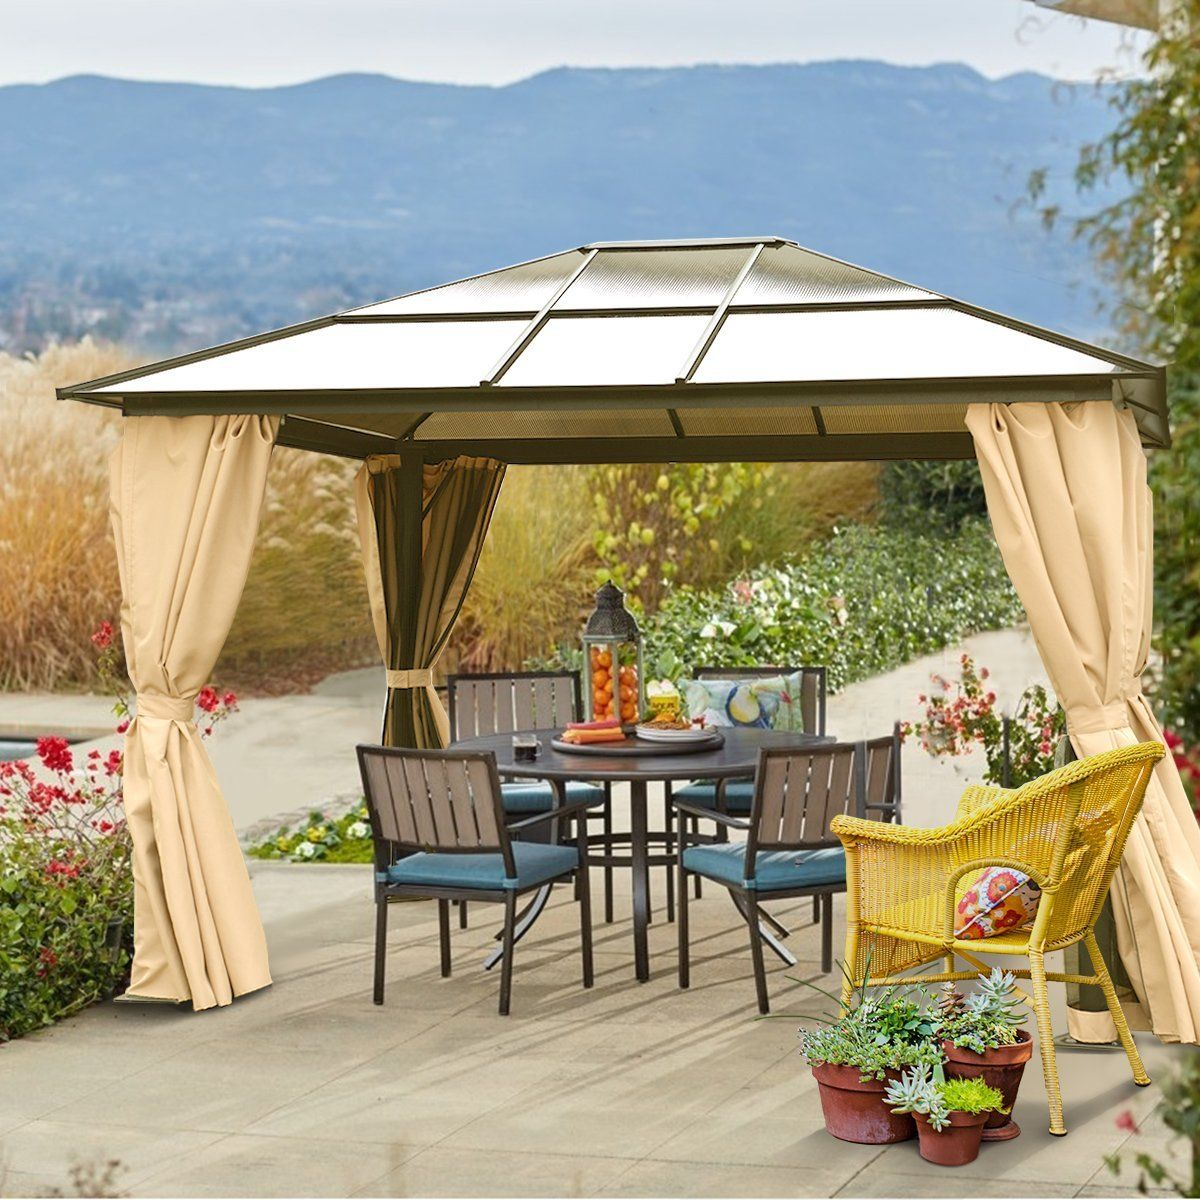 10 X 12 Hard Roof Patio Gazebo Aluminum Poles Heavy Duty Structure Patio Gazebo Patio Gazebo Canopy